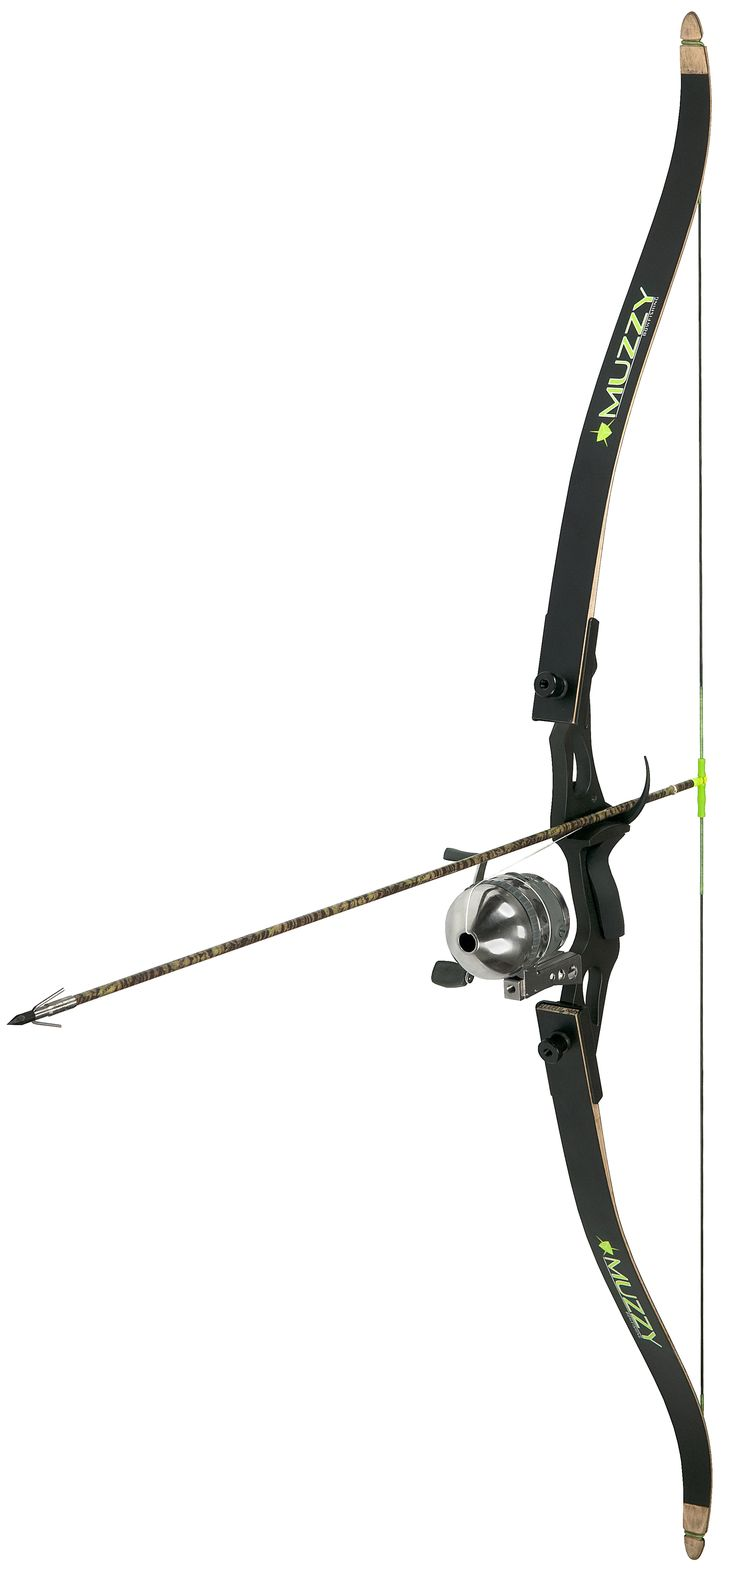 Muzzy's new bowfishing kit has everything you need to get started bowfishing.